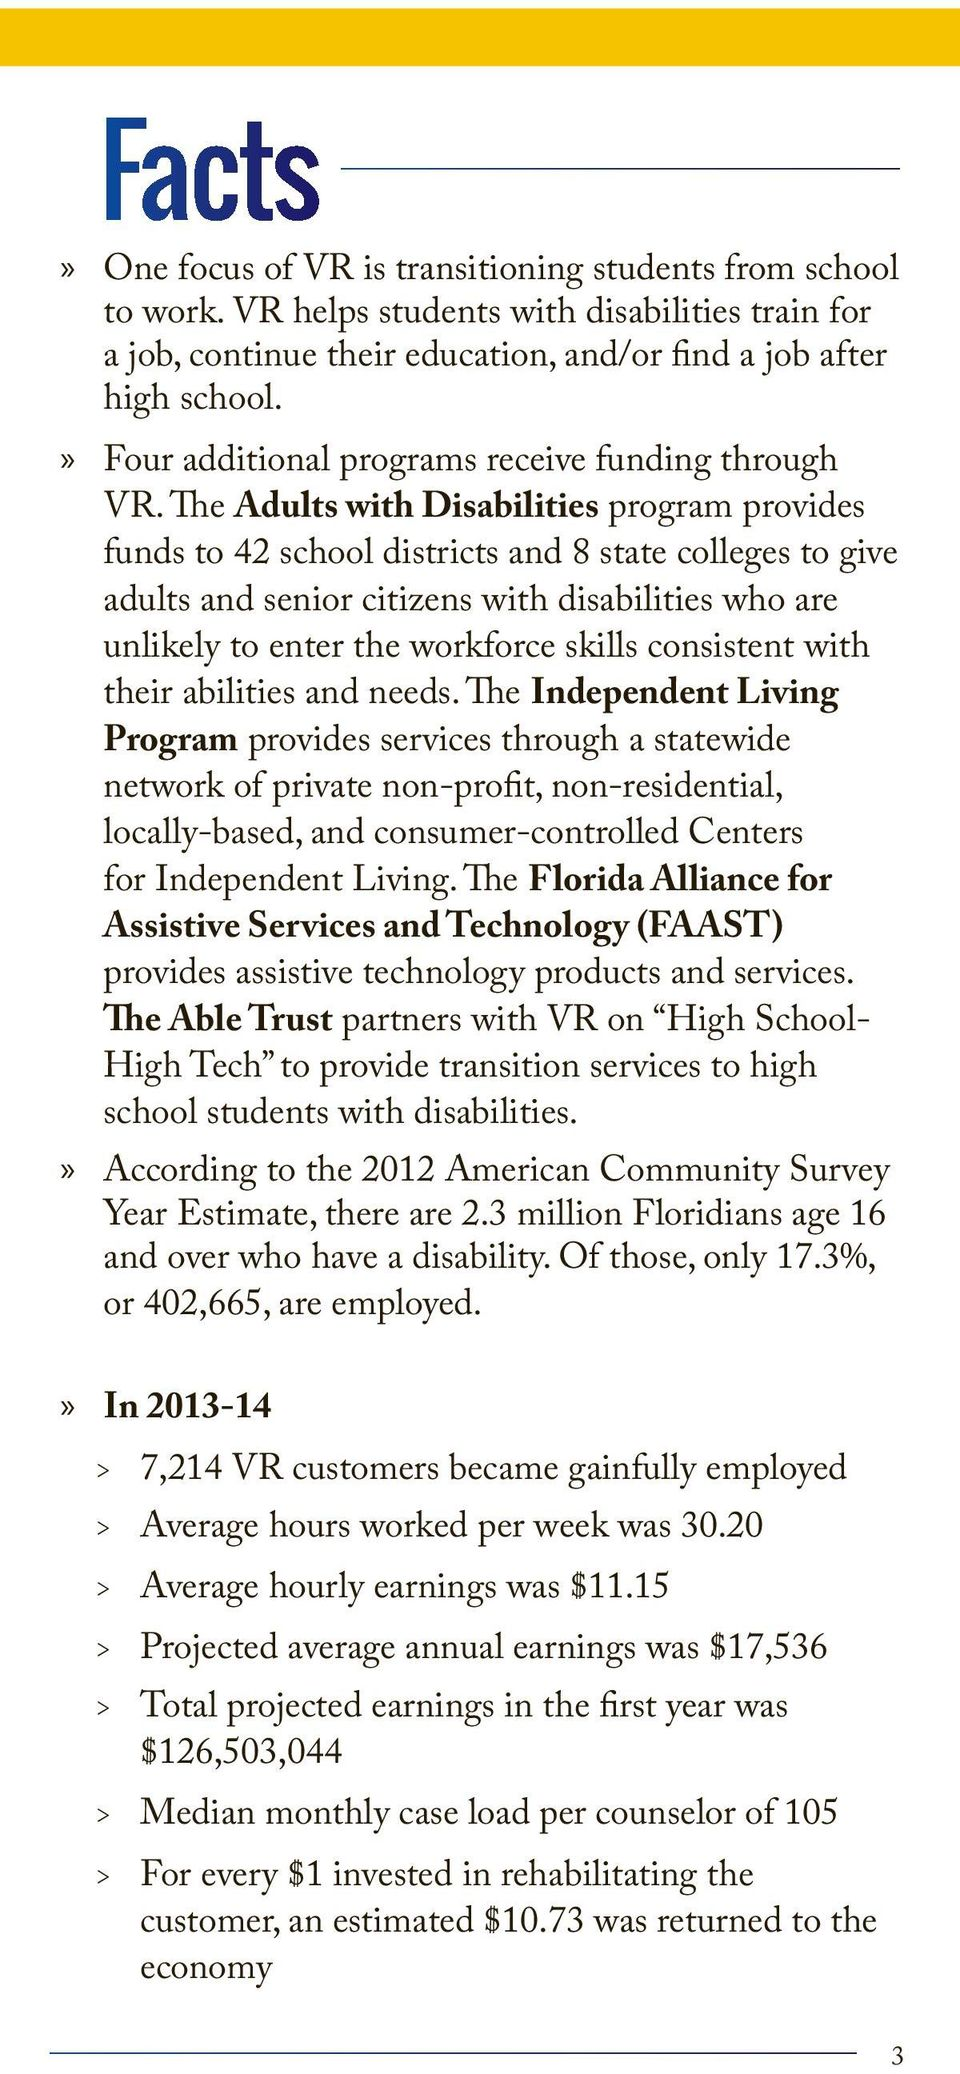 The Adults with Disabilities program provides funds to 42 school districts and 8 state colleges to give adults and senior citizens with disabilities who are unlikely to enter the workforce skills